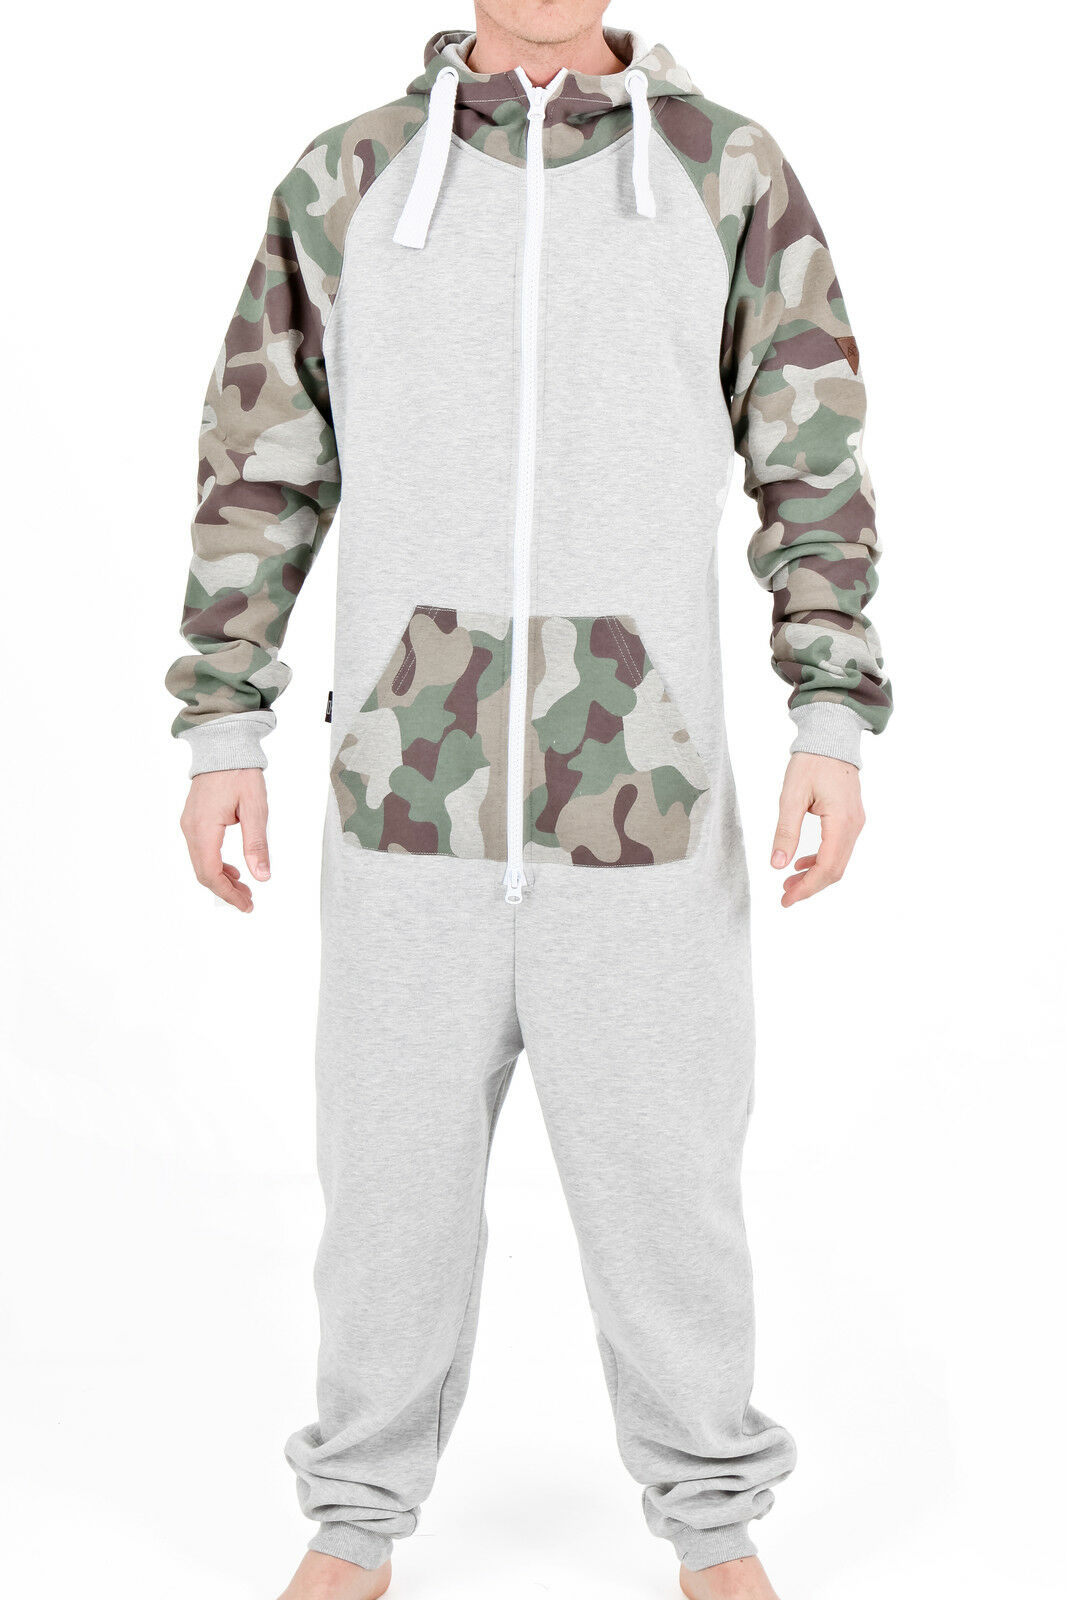 Huge assortment of mens footed pajamas with themes that include Star Wars, Star Trek, DC and Marvel Comics, Cartoons, and many more popular patterns.